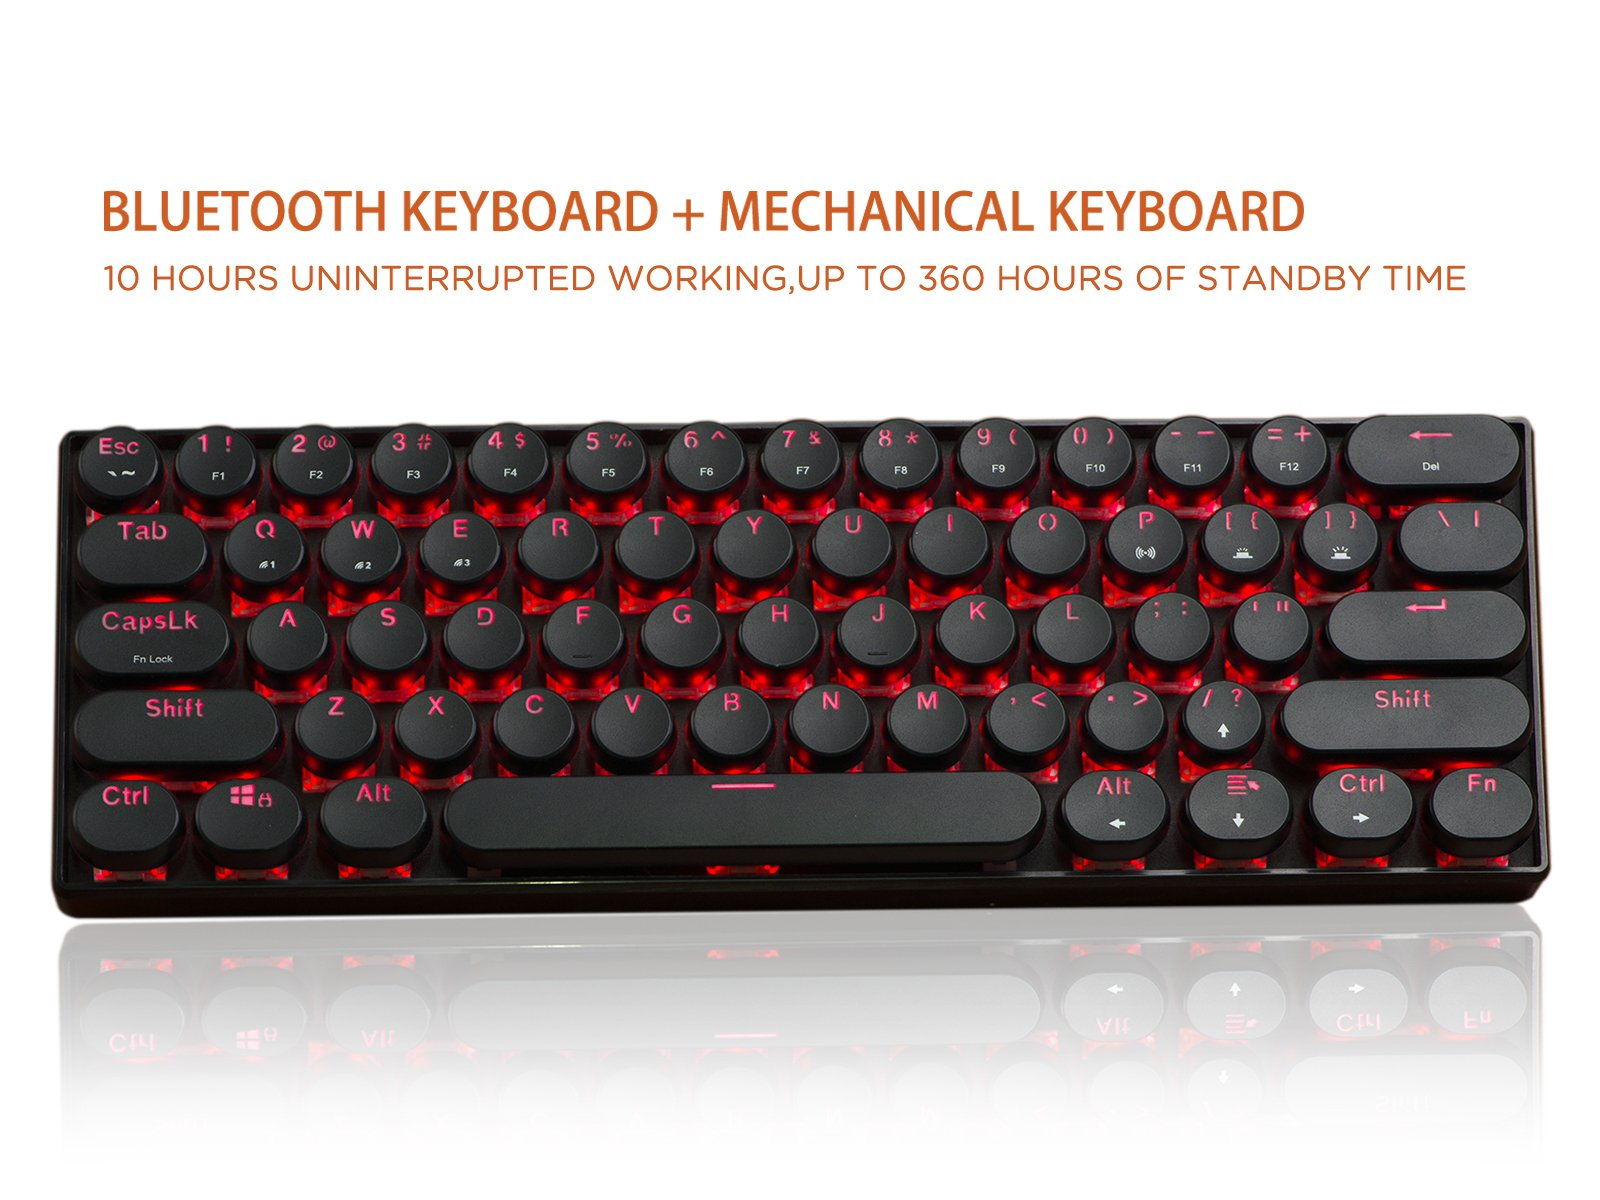 Bluetooth Mechanical Keyboard, LinDon-Tech Mechanical Keyboard, Bluetooth/Wired Dual Mode, Brown Switches with Red Backlit, 61 Keys for iPad Pro iPad Air Samsung Tablet pc Laptop - Black